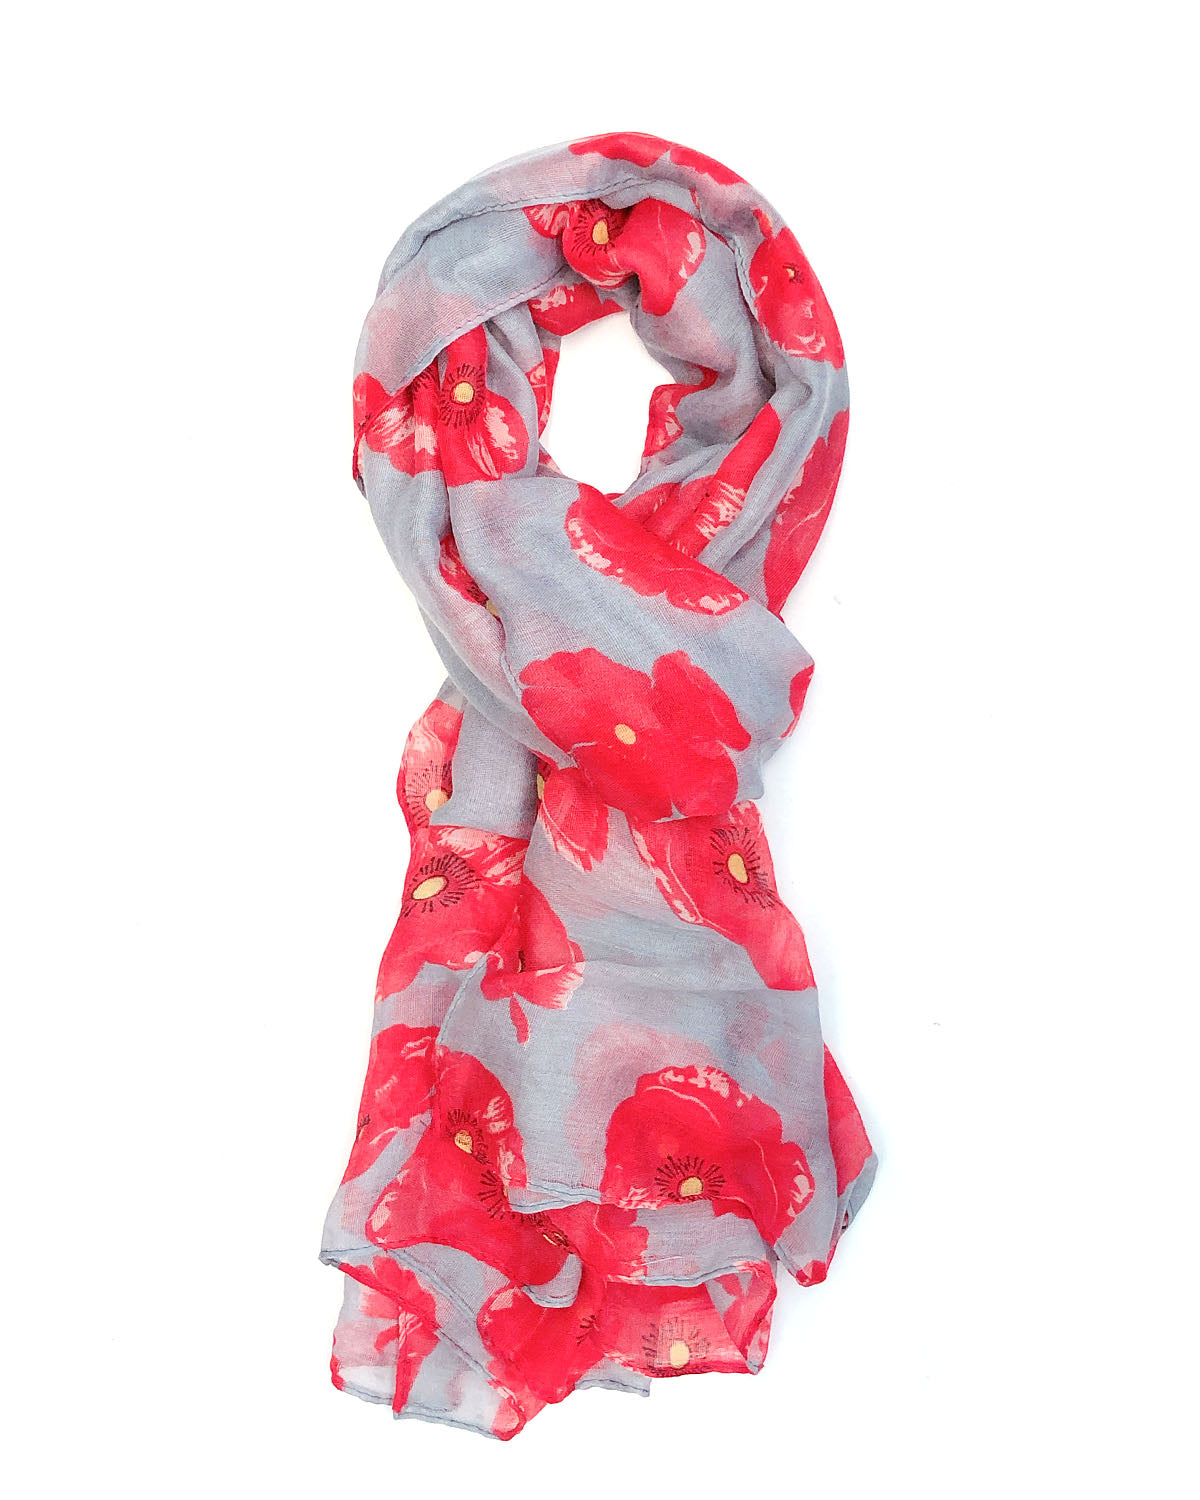 Navy blue Poppy Long Scarf Throw Wrap  material scarves Remembrance Day gift